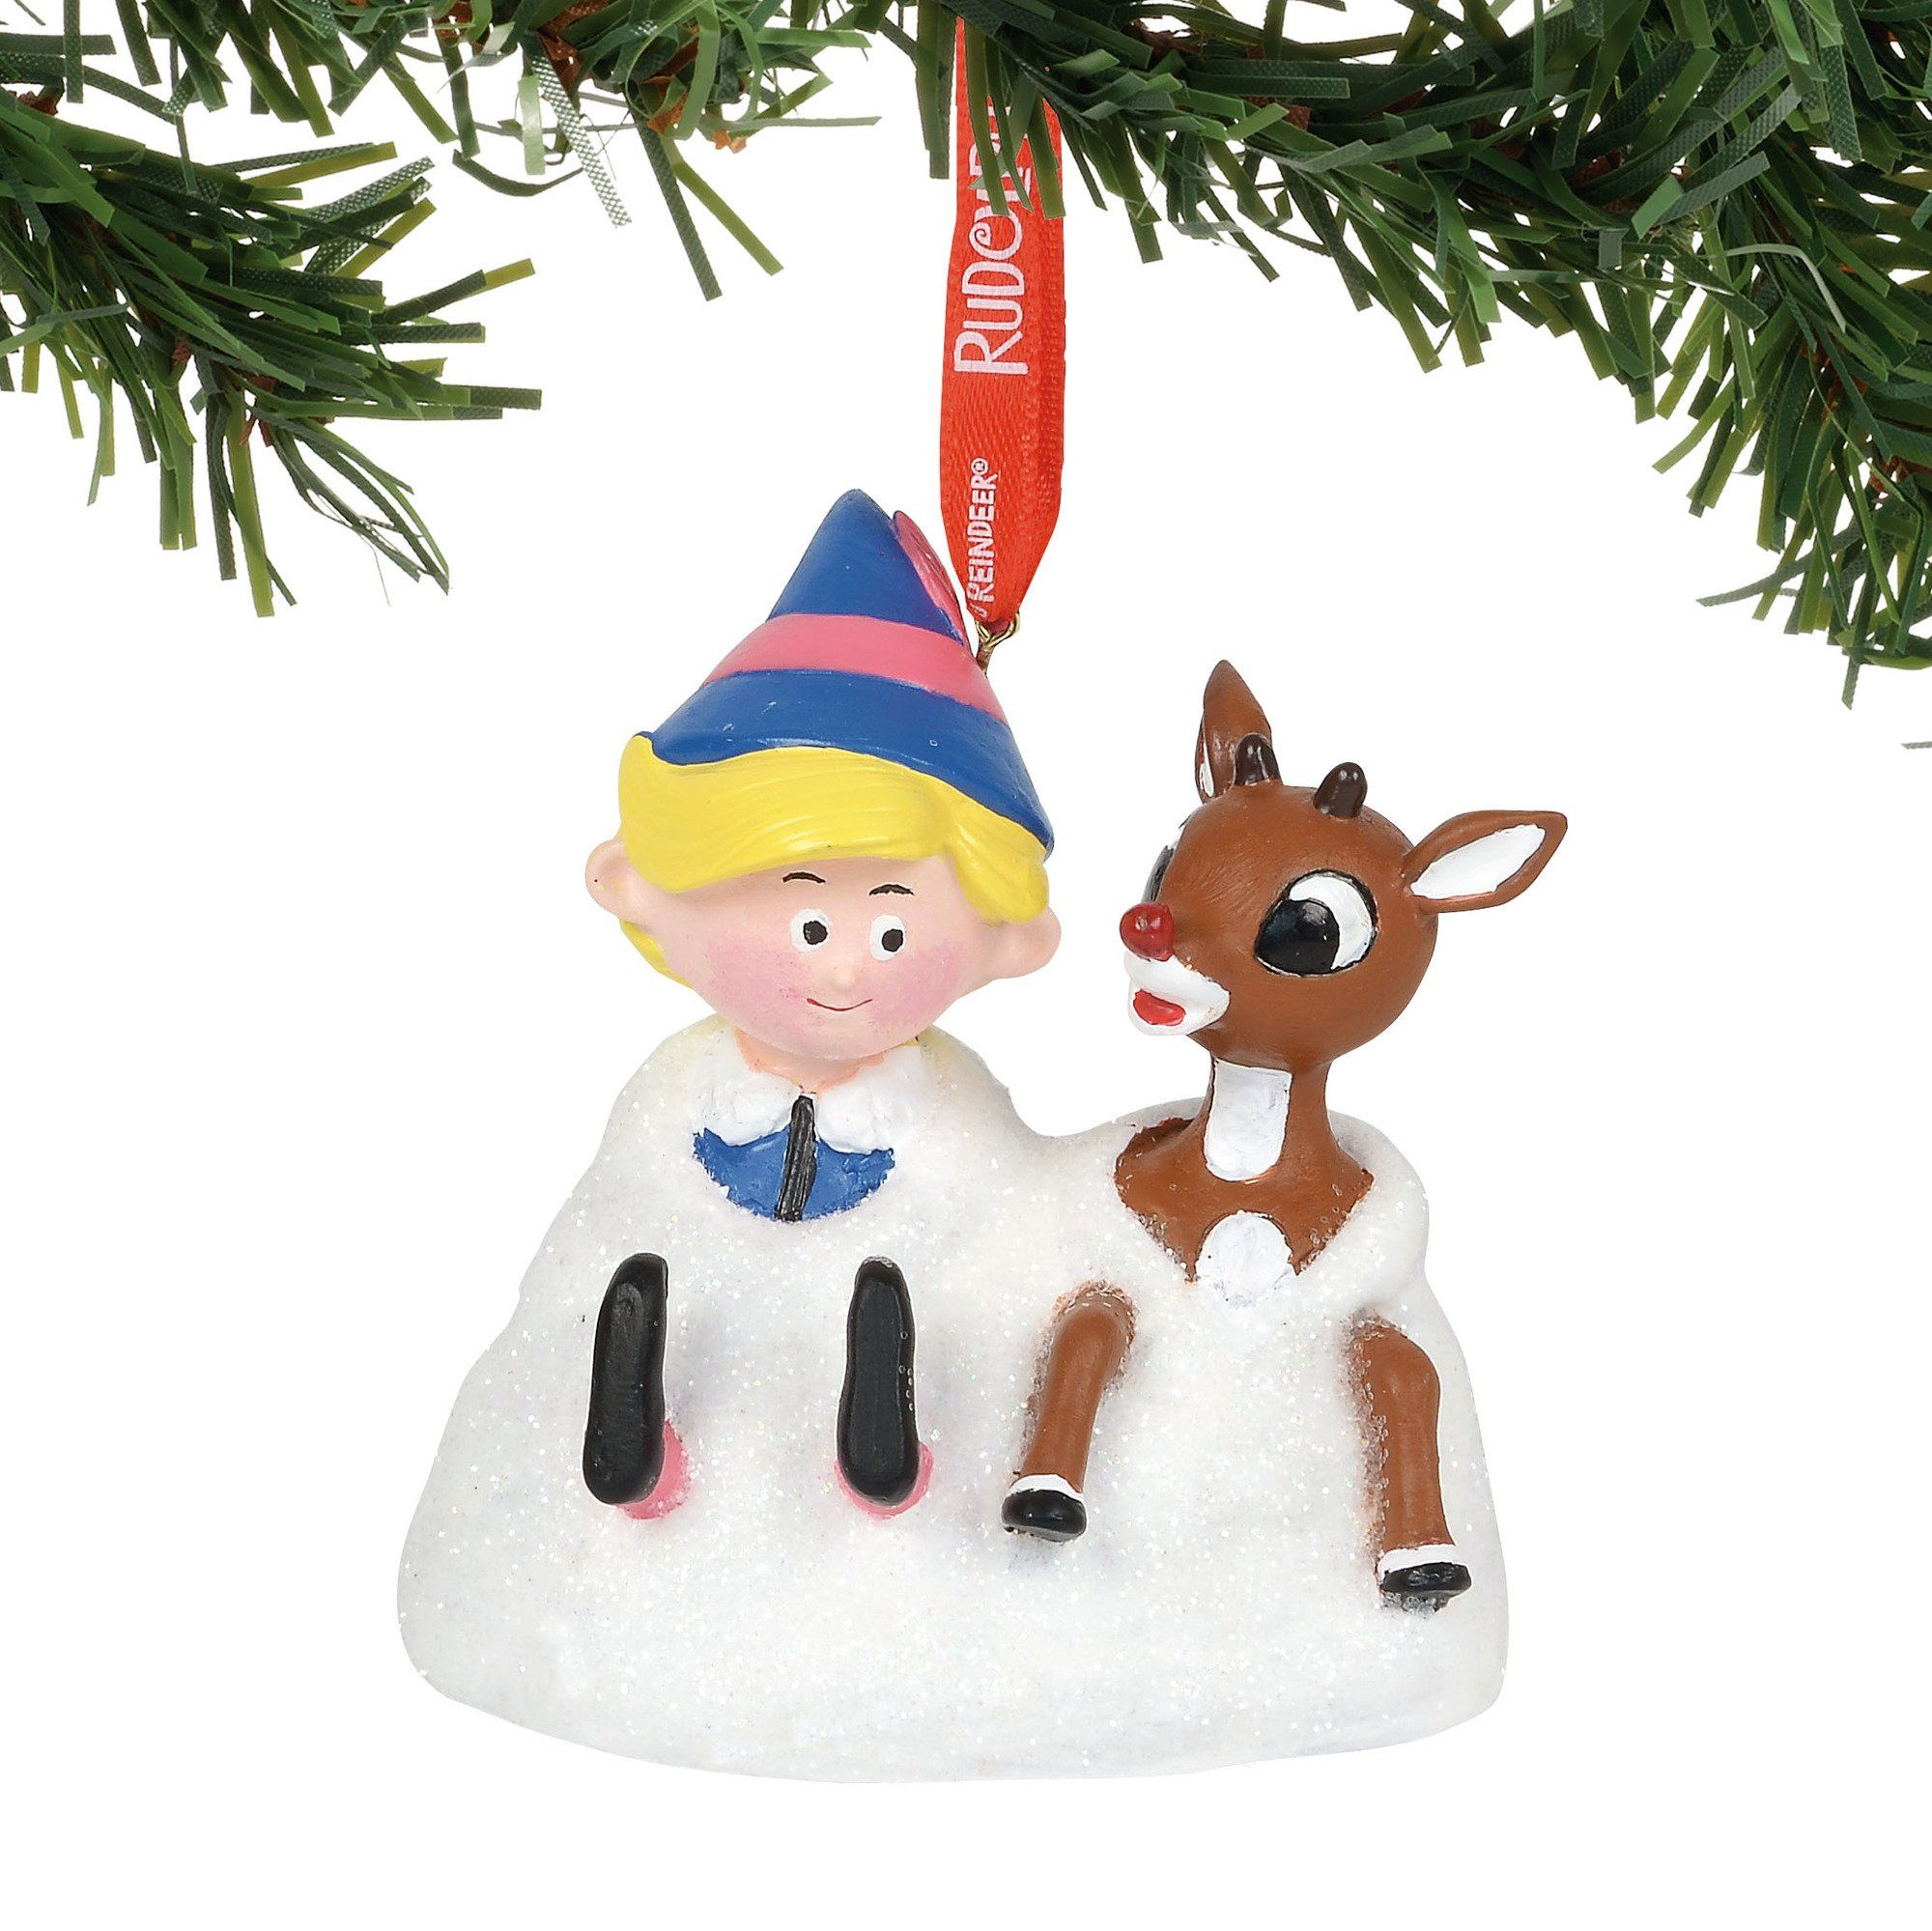 Department 56 Rudolph The Red Nosed Reindeer in a Wreath